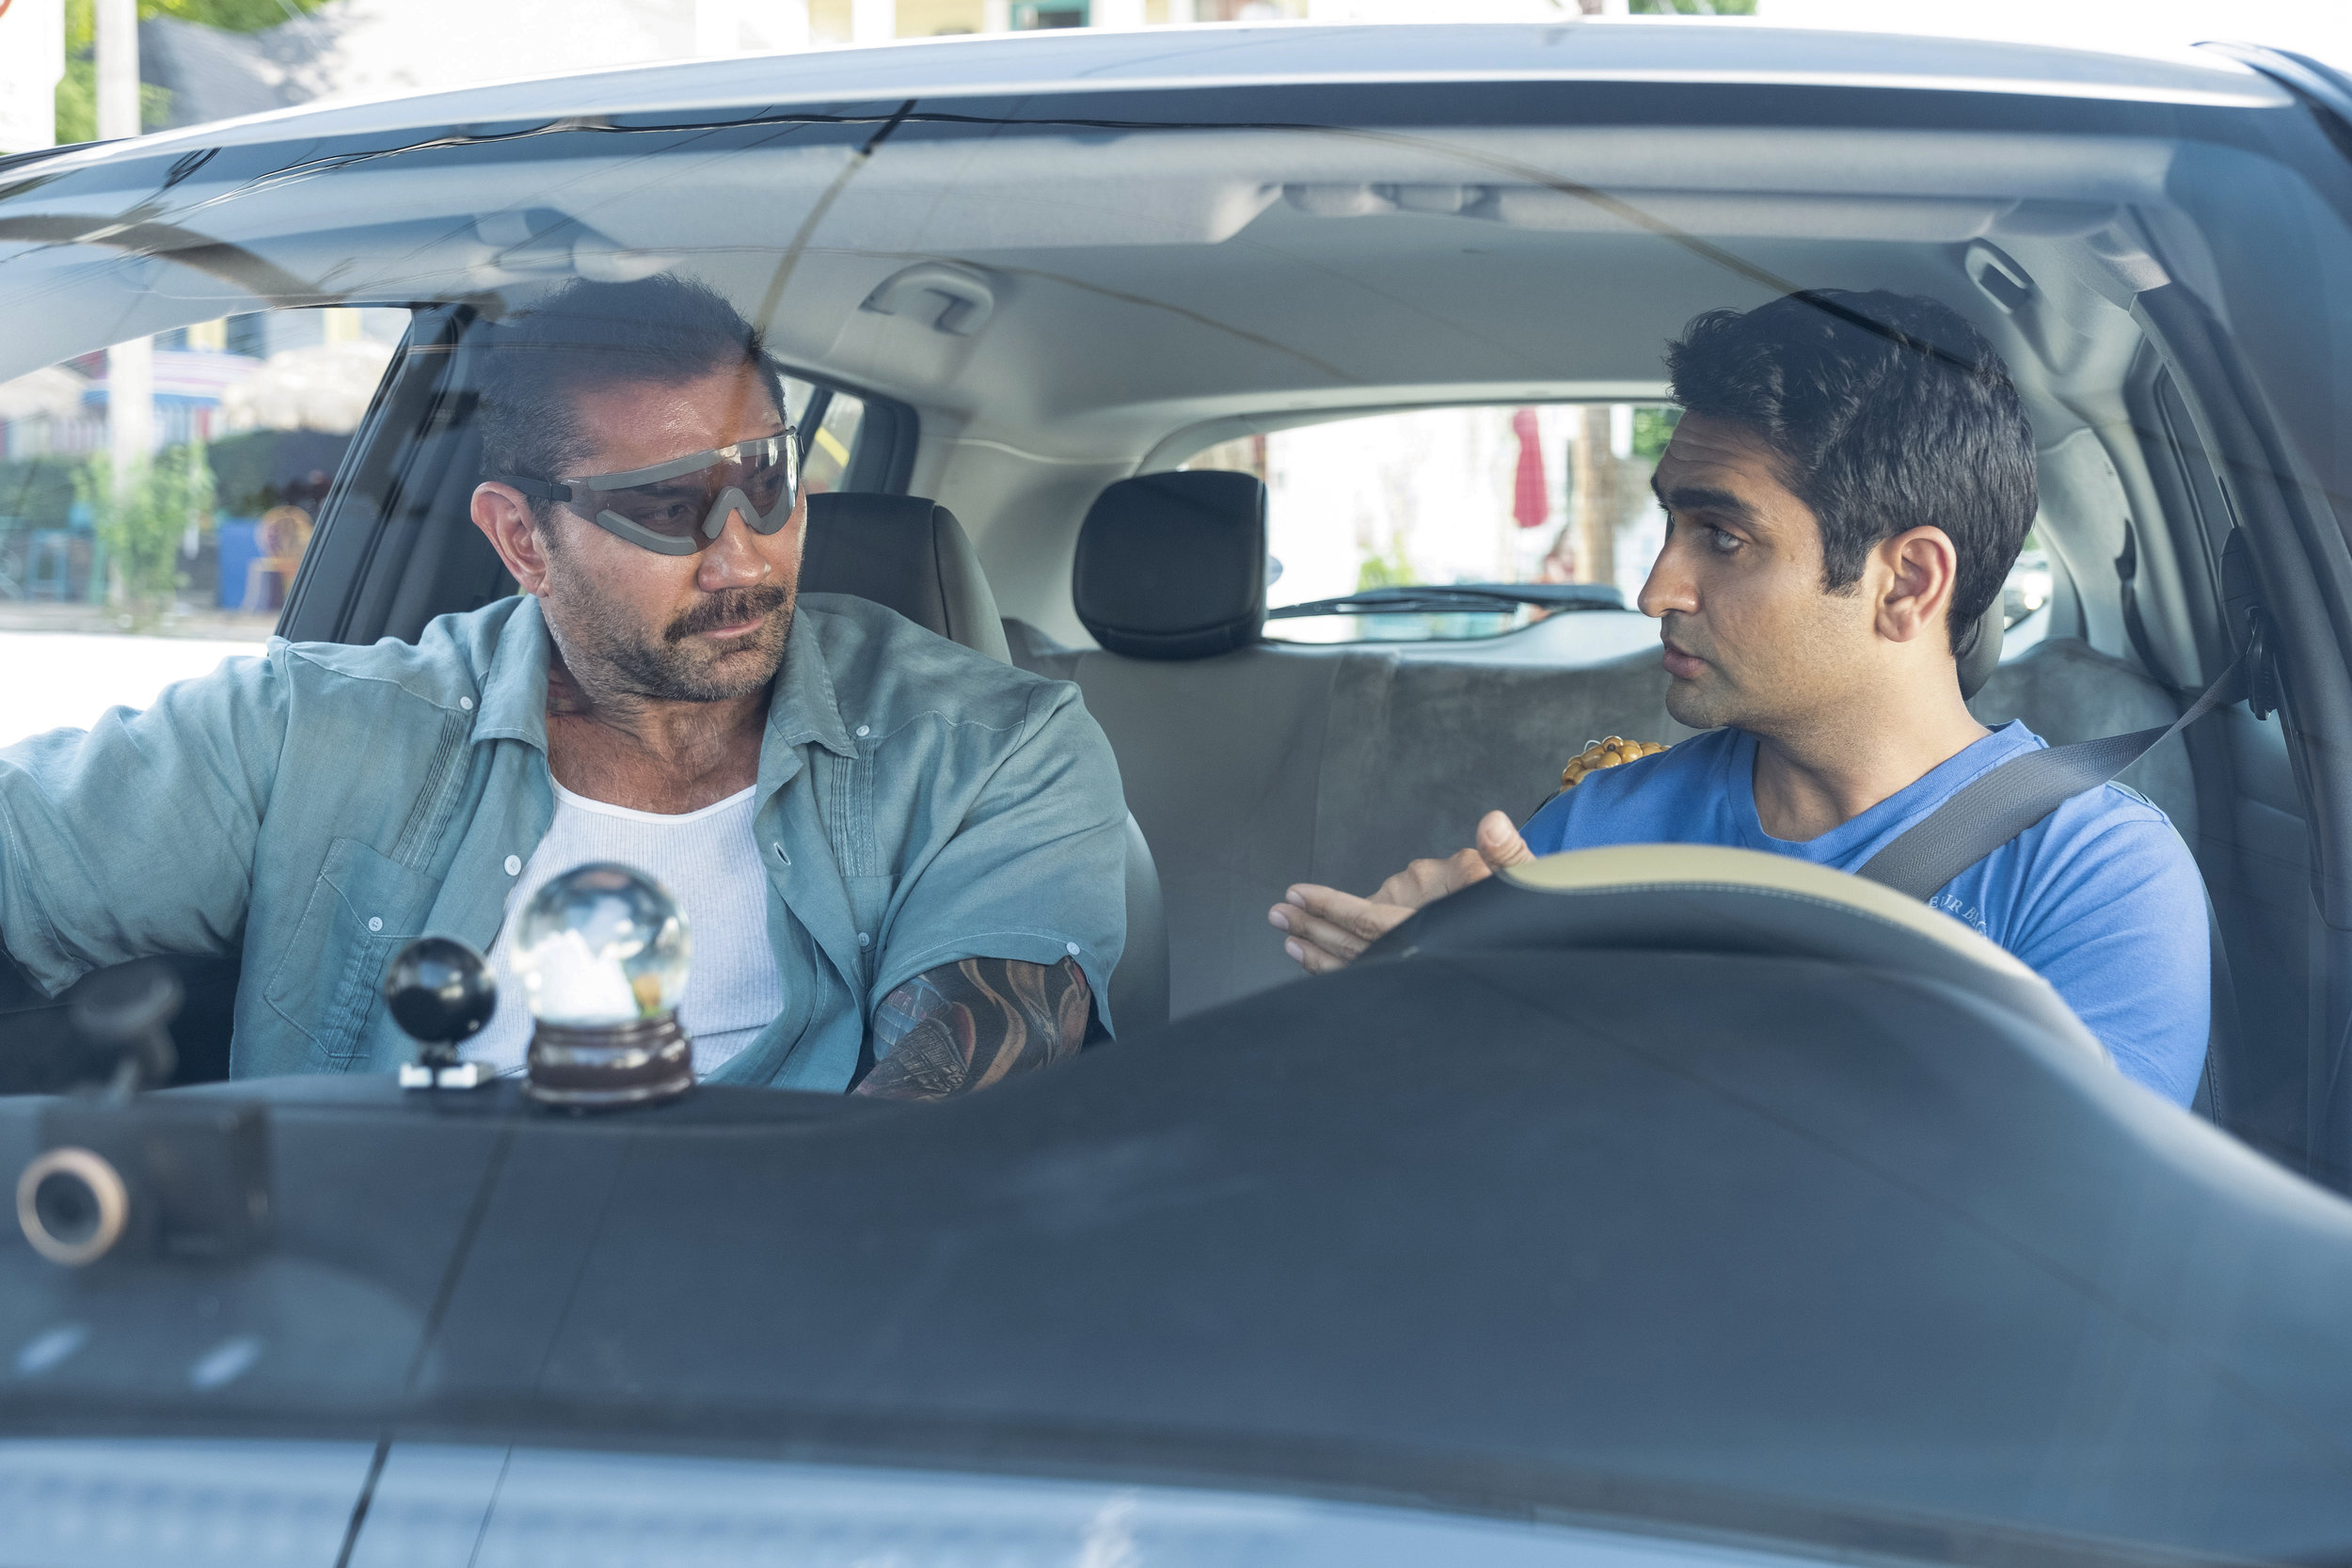 "Police detective Vic (Dave Bautista), left, employs an Uber driver, Stu (Kumail Nanjiani), to help crack a case in the buddy-cop comedy ""Stuber."" (Photo by Mark Hill, courtesy of 20th Century Fox.)"